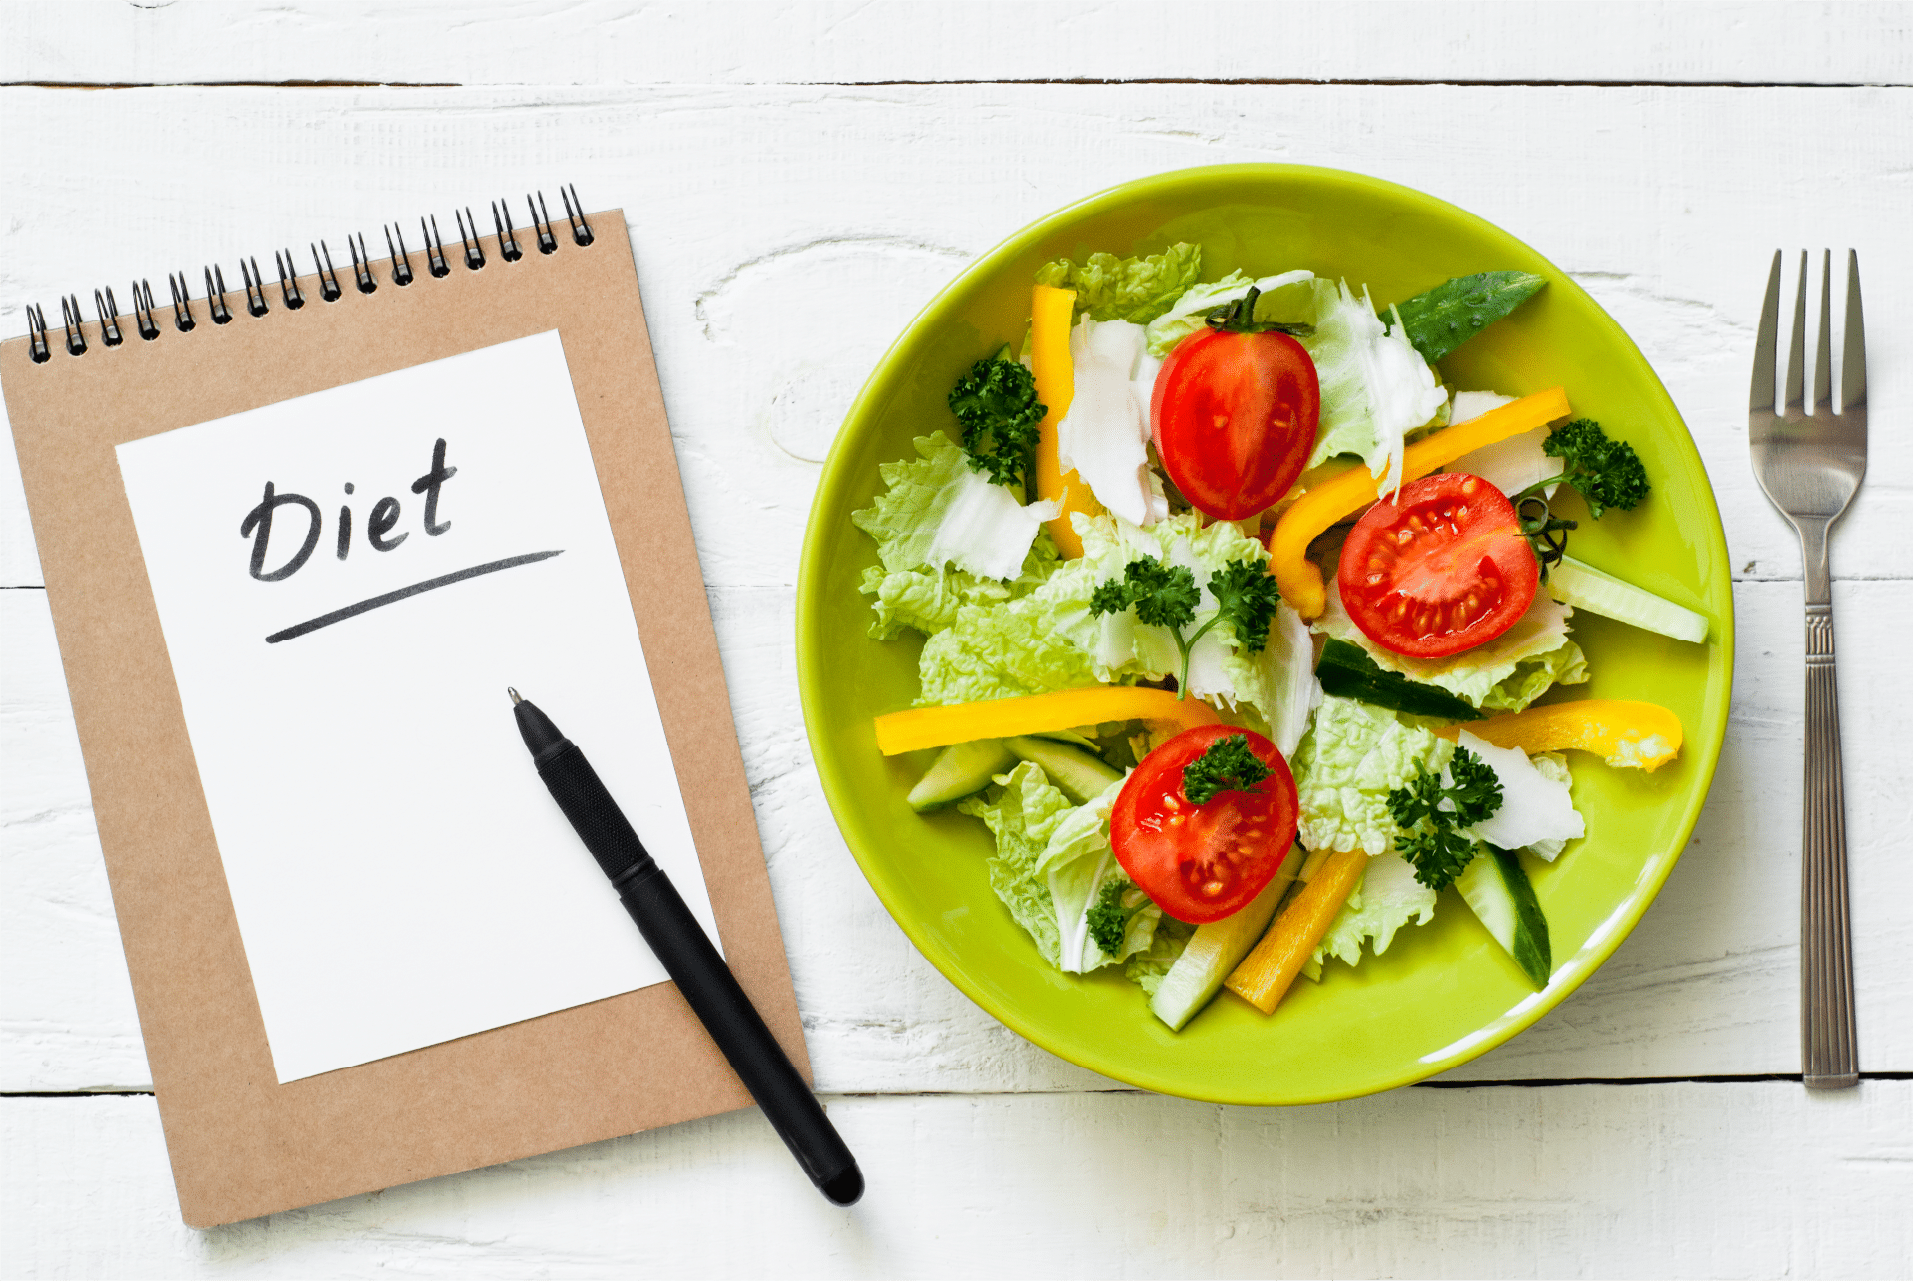 Plate of food next to a notebook that says diet